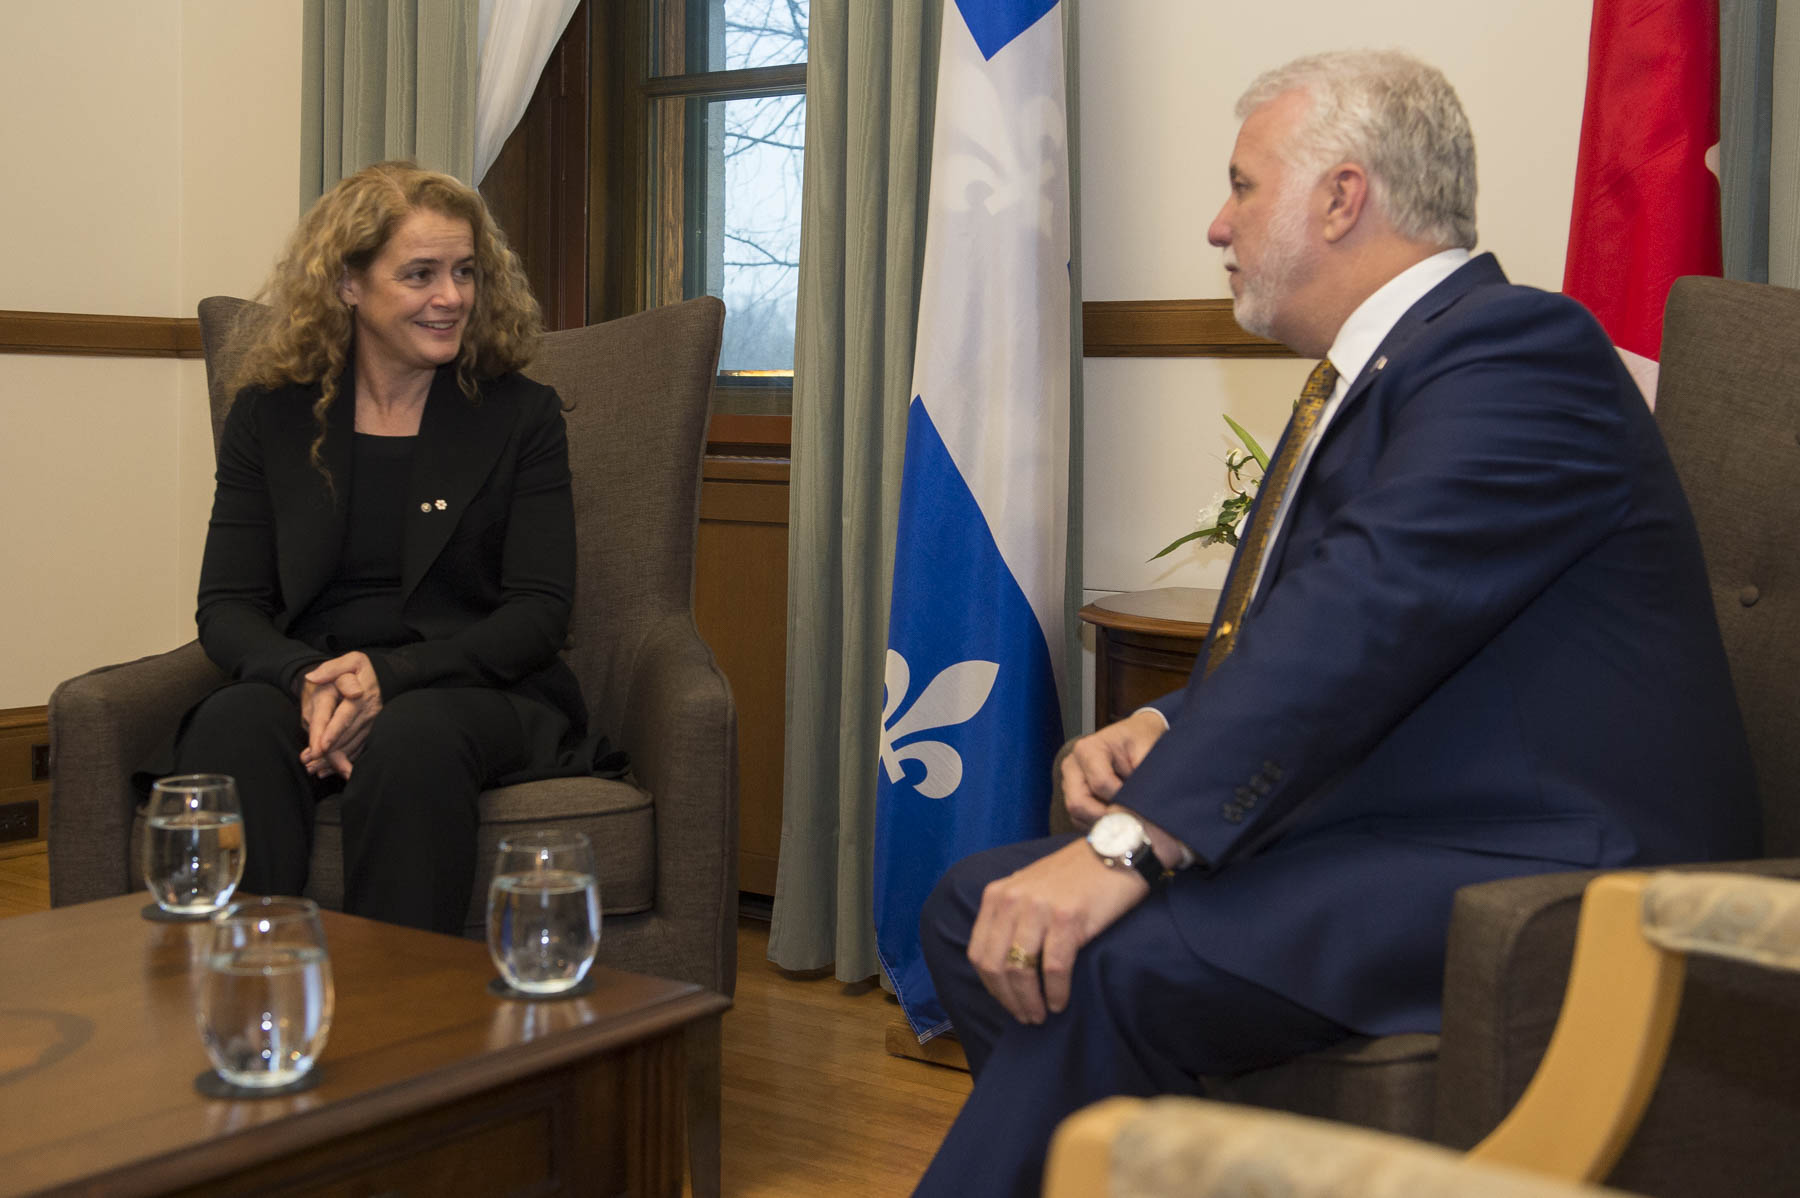 She also met with the Honourable Philippe Couillard, Premier of Quebec.